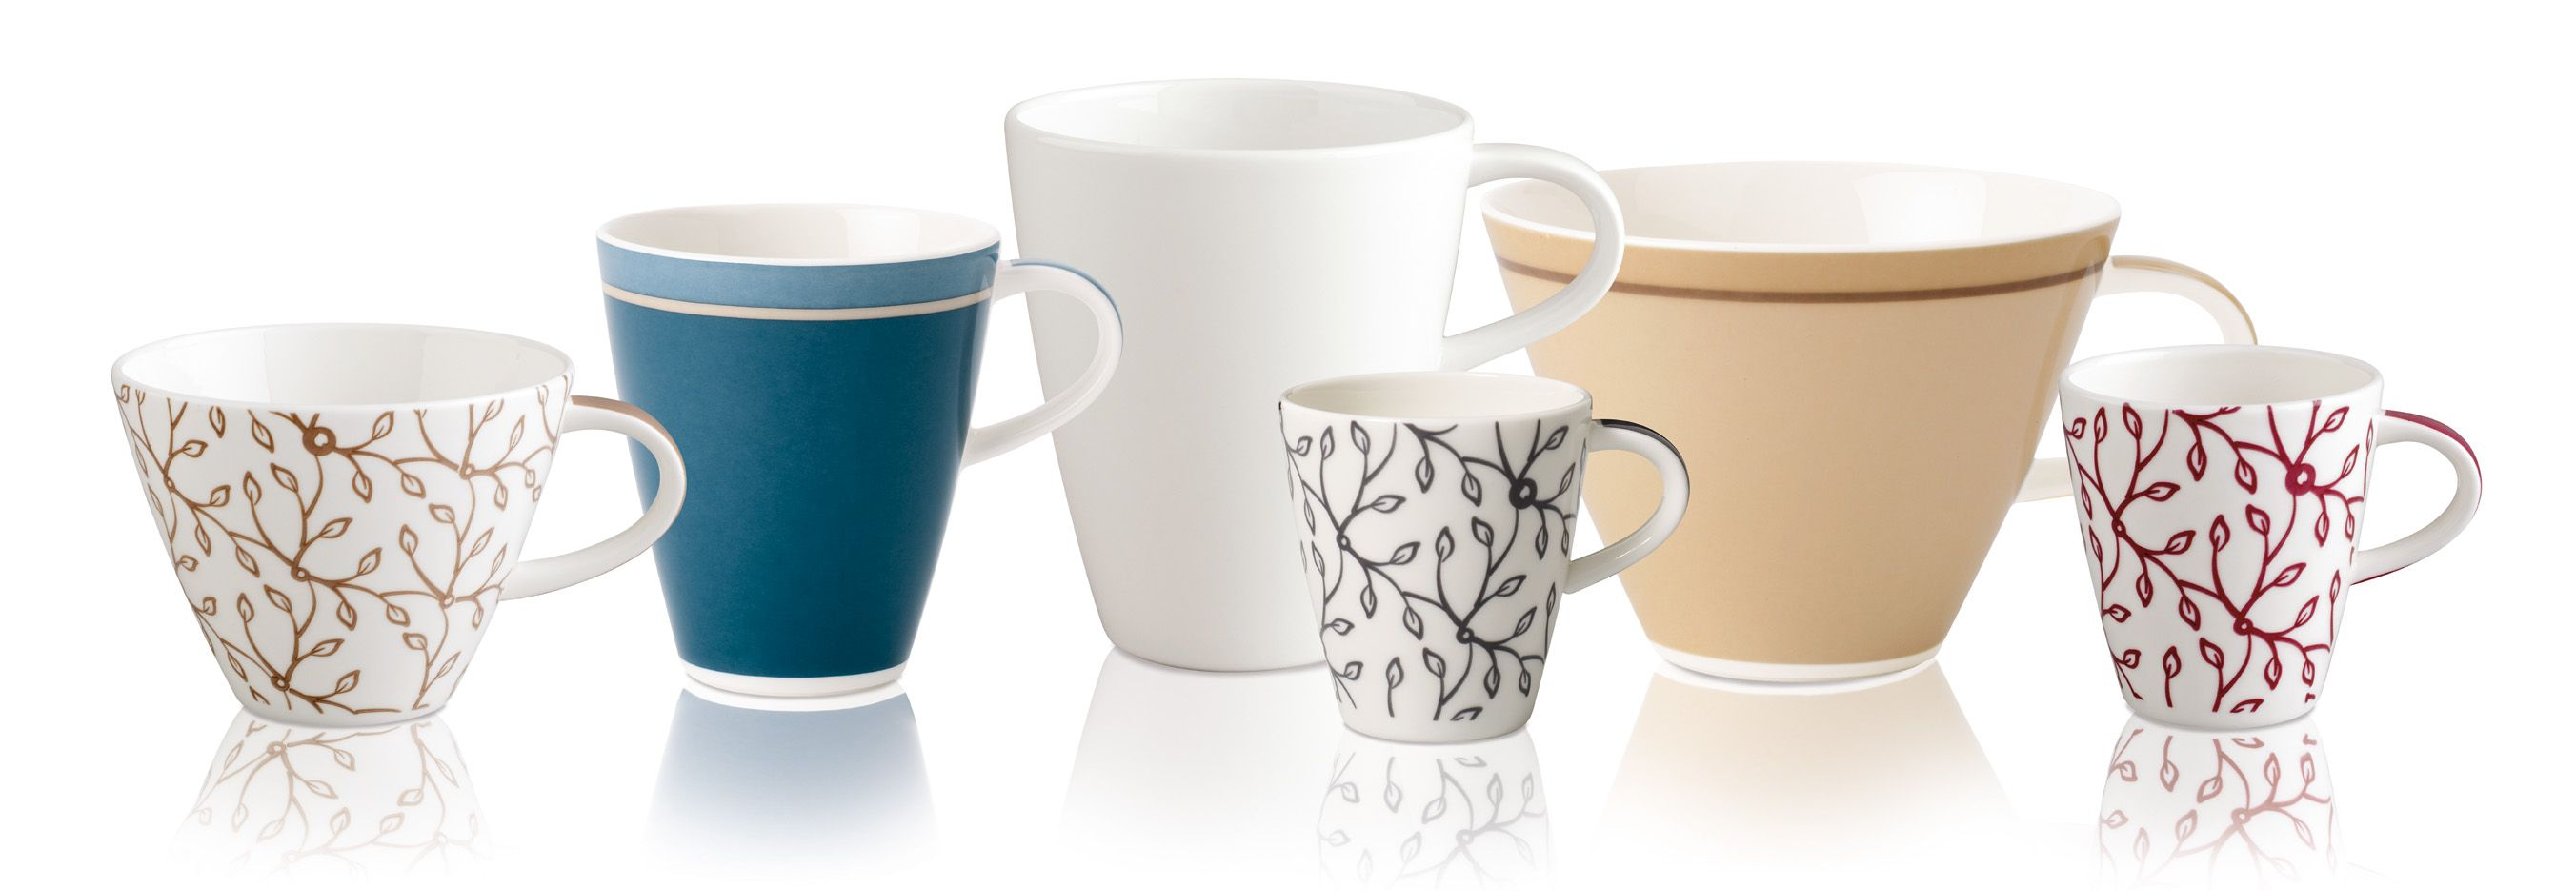 Caffe Club uni cornflower cup collection